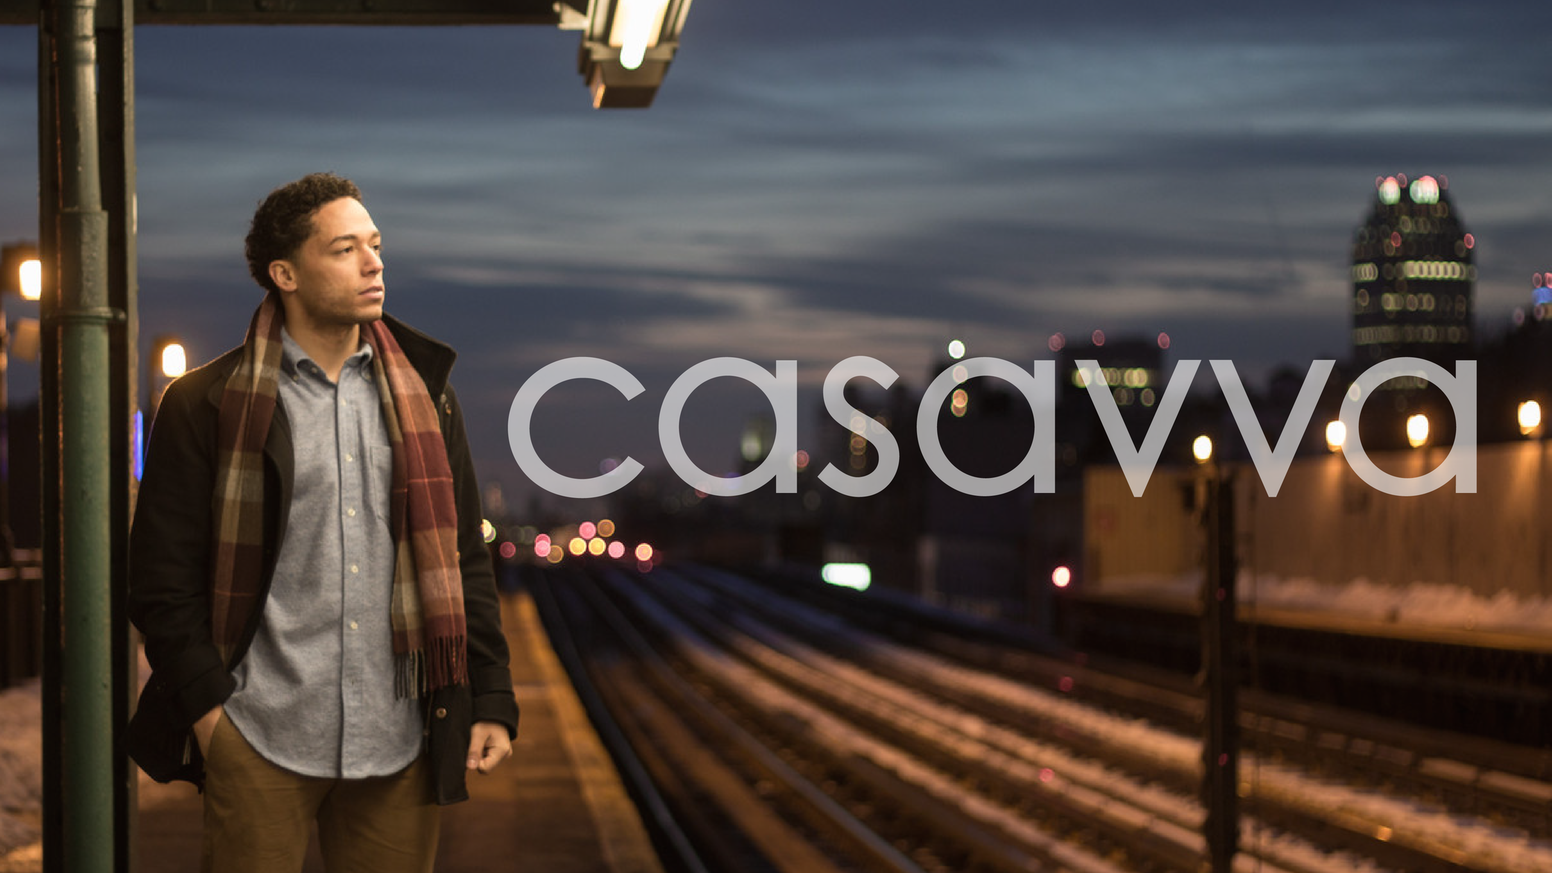 Created for the lifestyle of the modern gentleman, Casavva shirts bring you better design, fabric and craftsmanship.